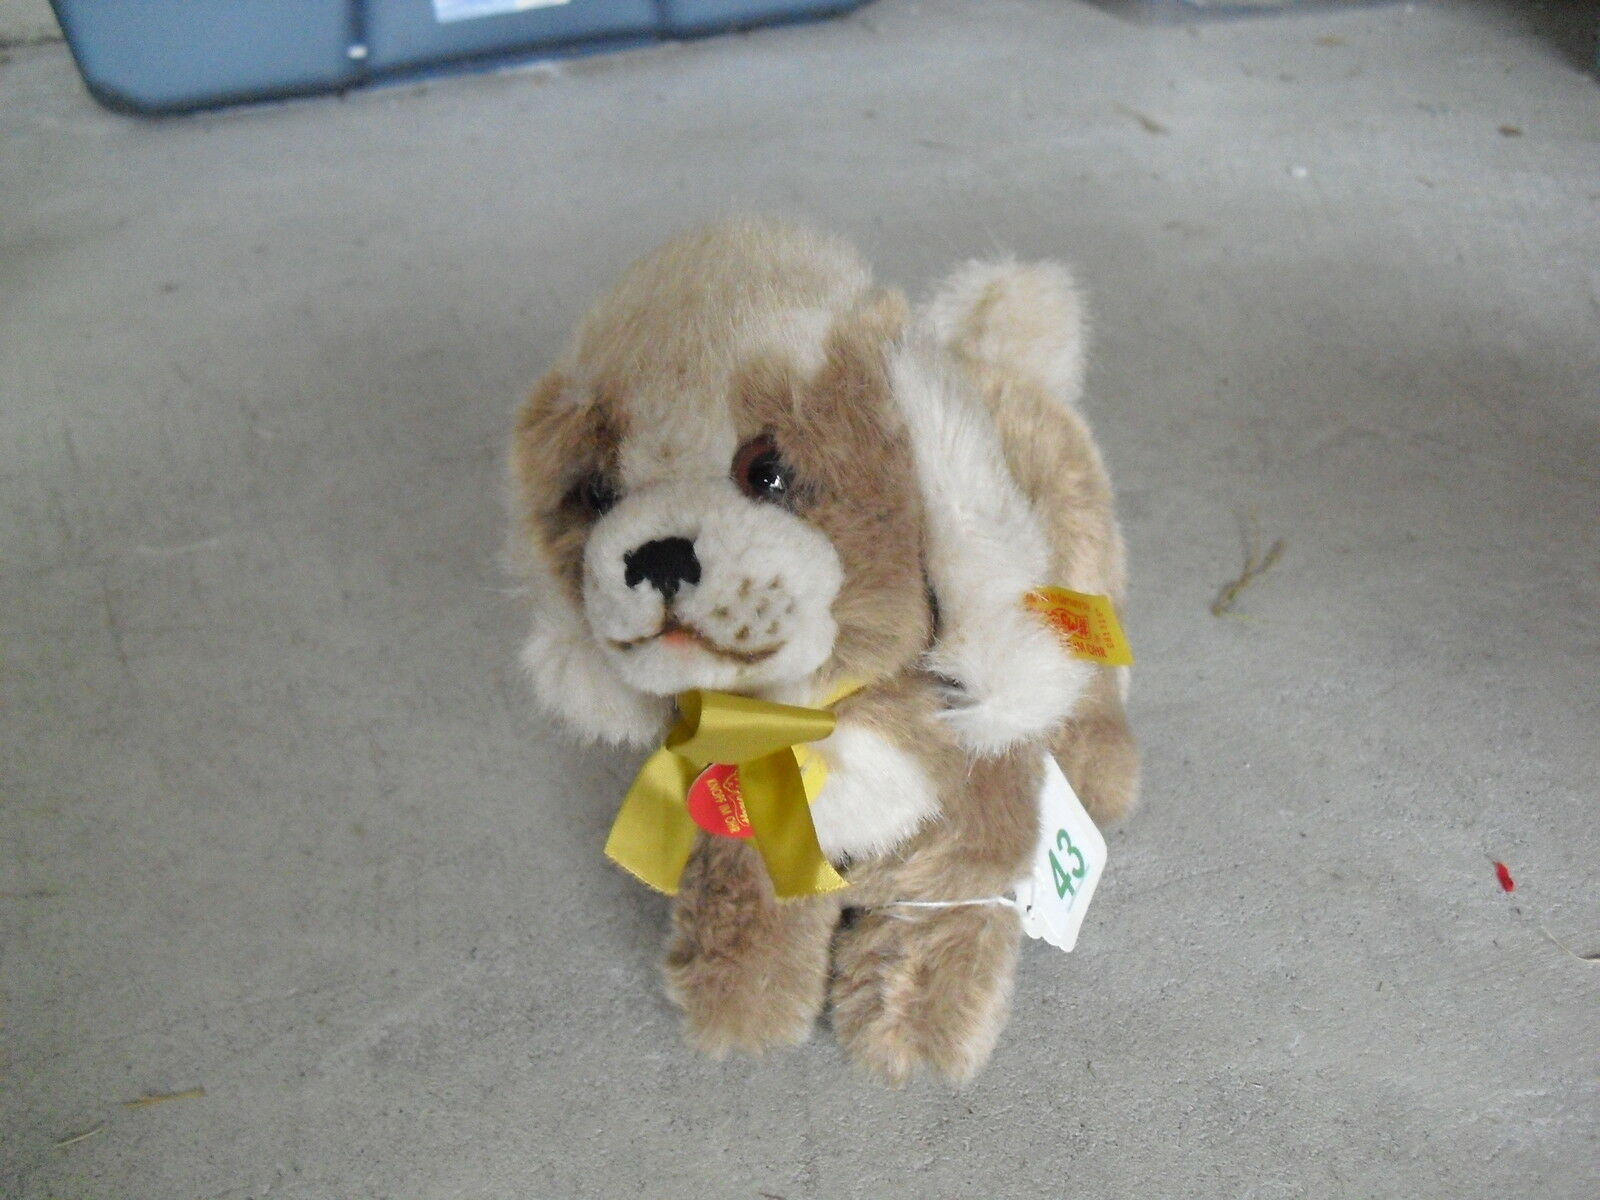 Cool Larger Steiff Drolly the Dog Stuffed Animal with Ear Tag 8  Tall LOOK